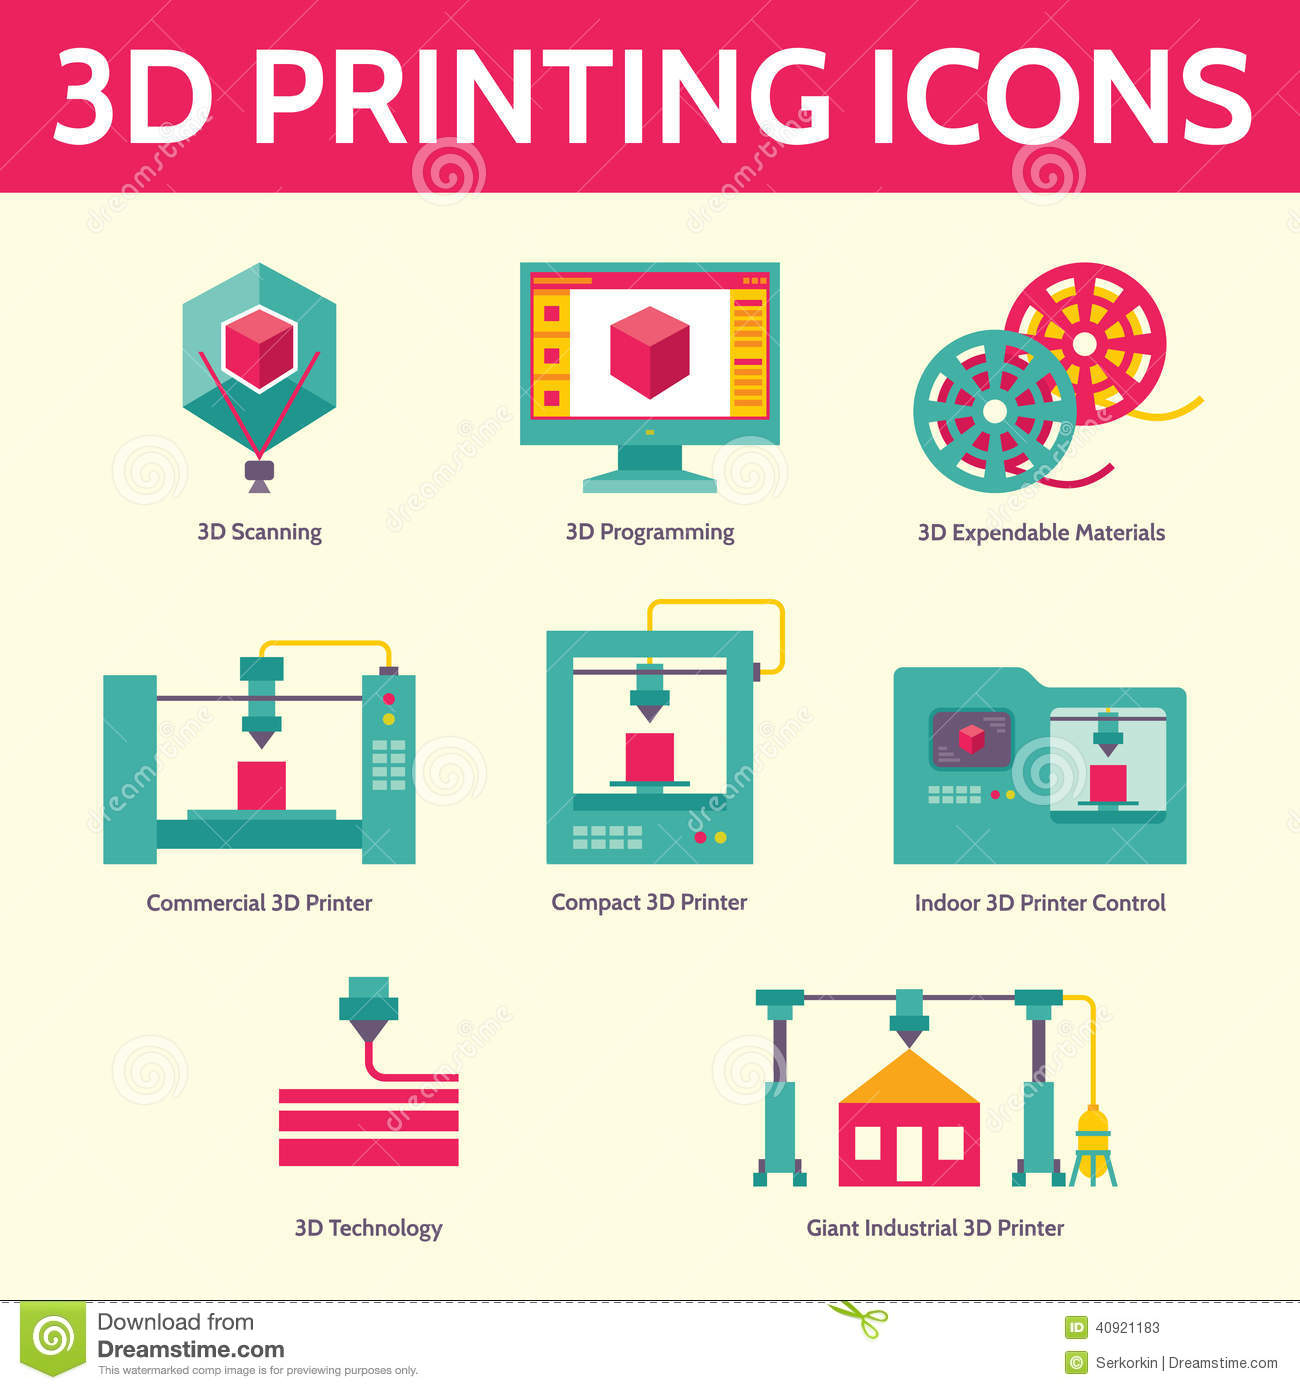 Web Design Graphic Design Print And 3d Icons Collection